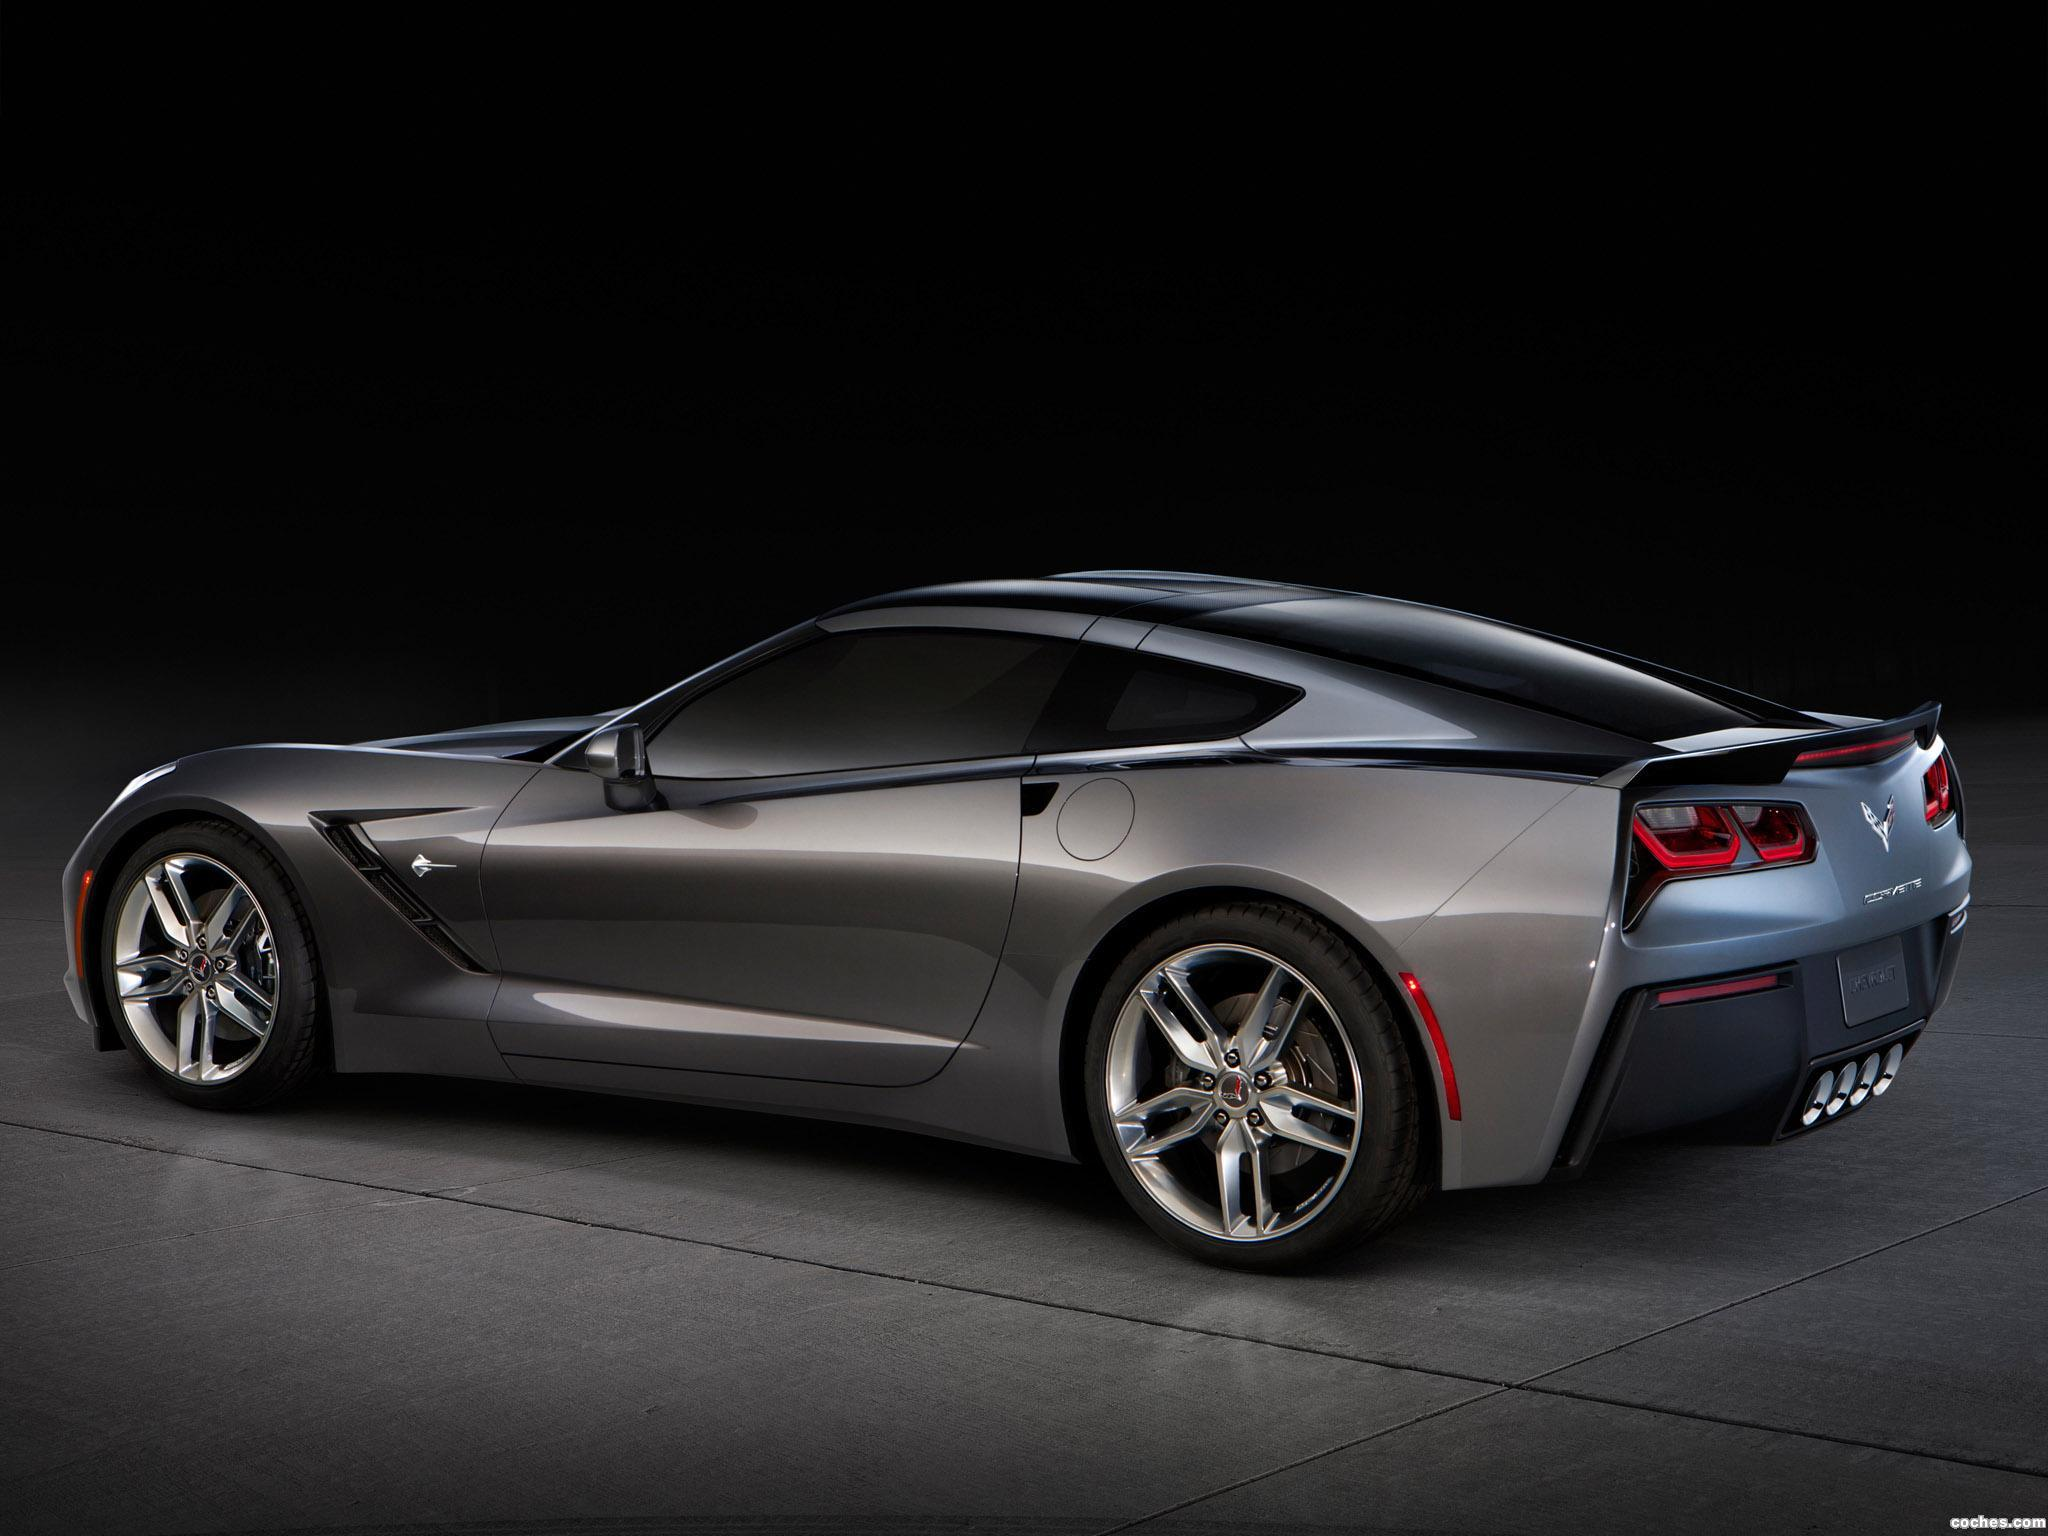 Foto 4 de Chevrolet Corvette Stingray C7 2014